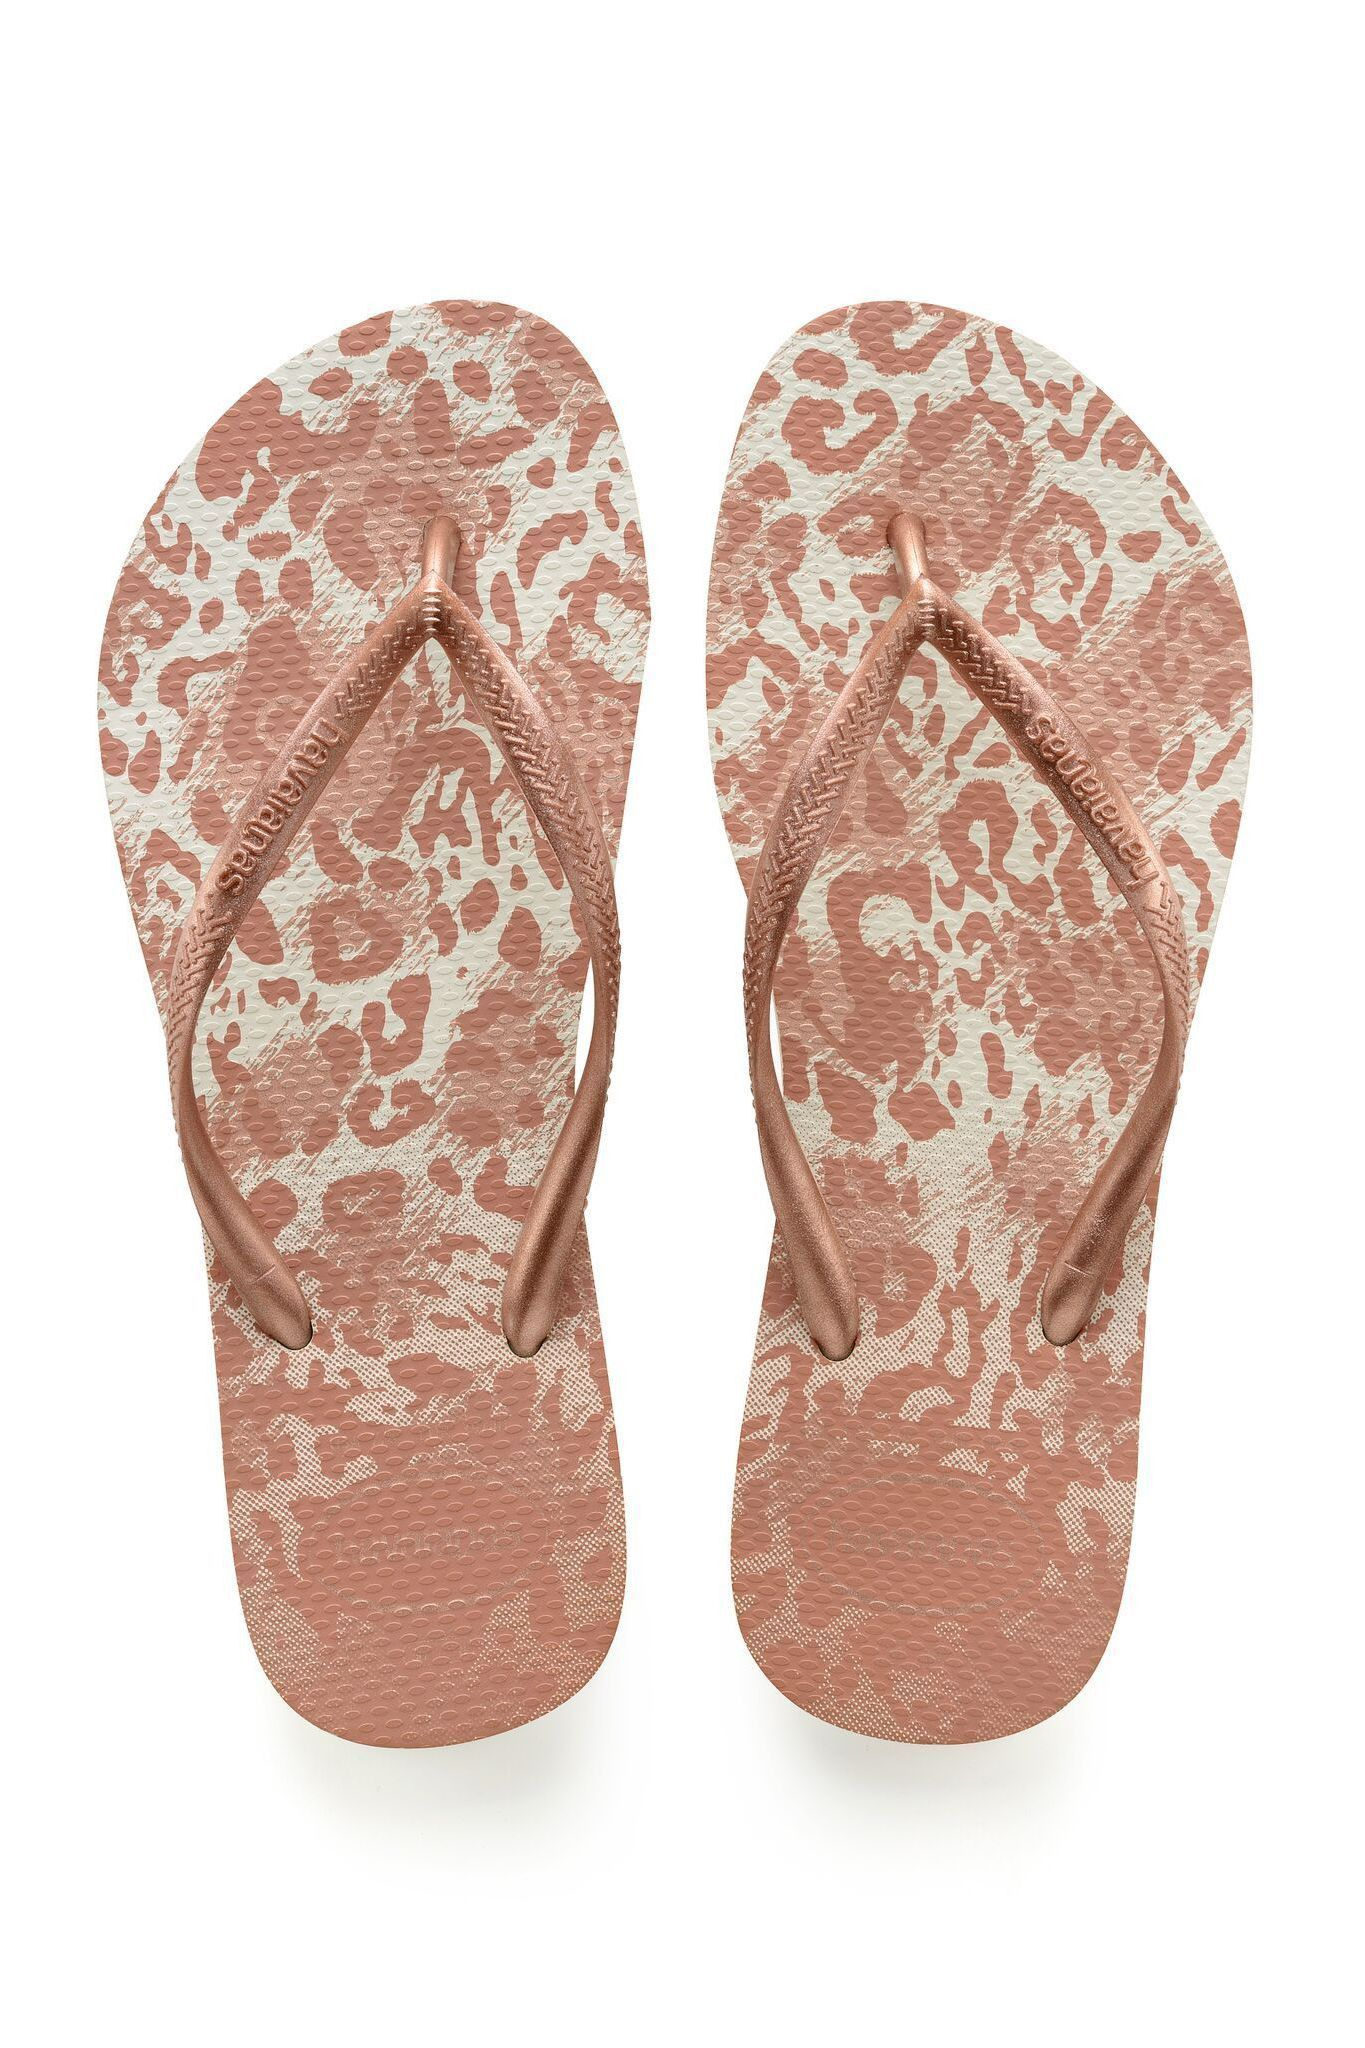 a5a1ef458754 Havaianas Slim Animals White Golden Blush Flip Flop Price From  £13.55